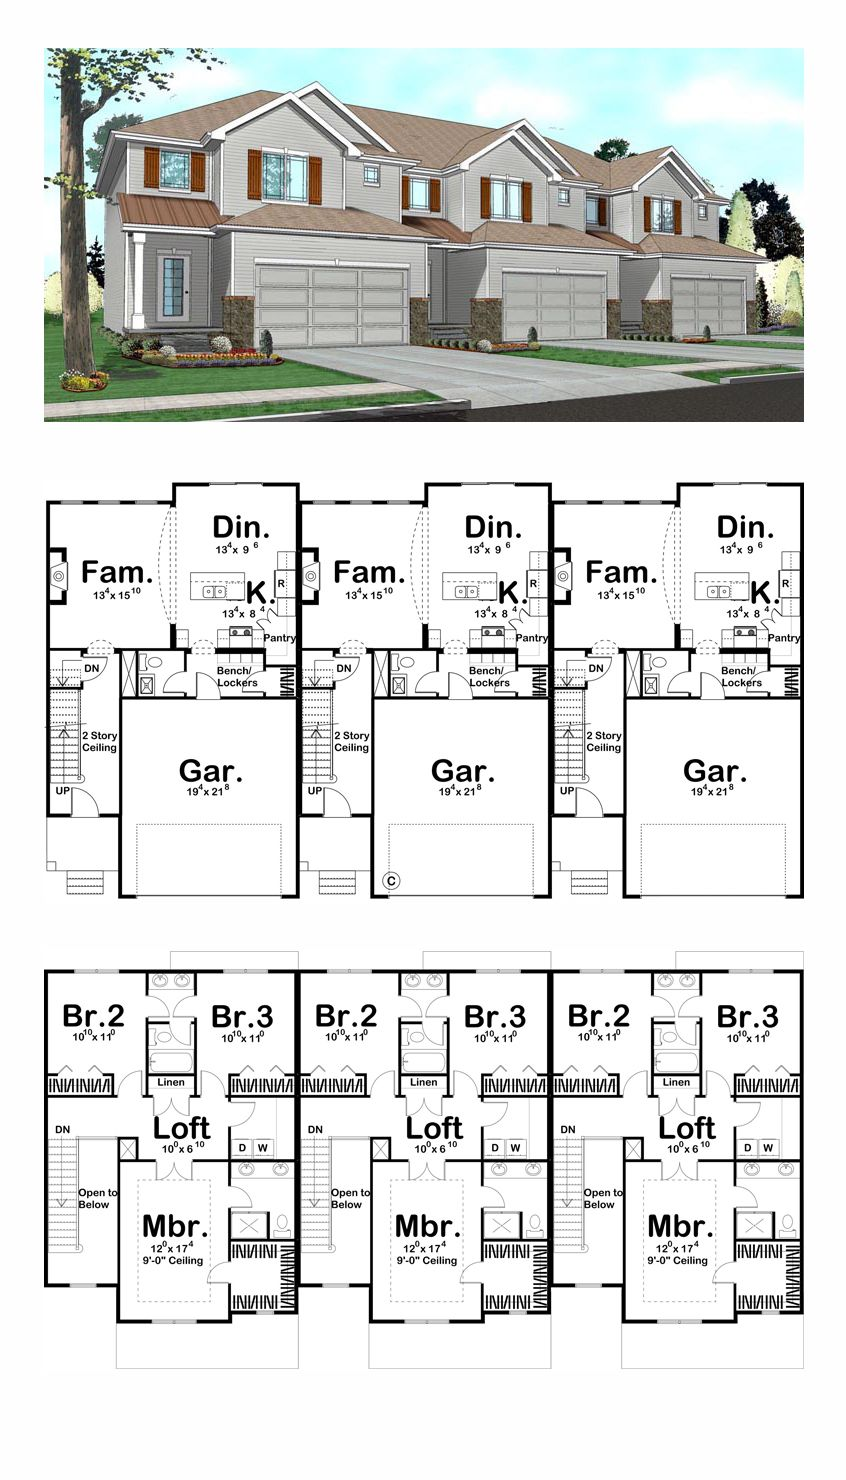 Three unit triplex plan 41141 total living area 4935 sq for 4 unit multi family house plans